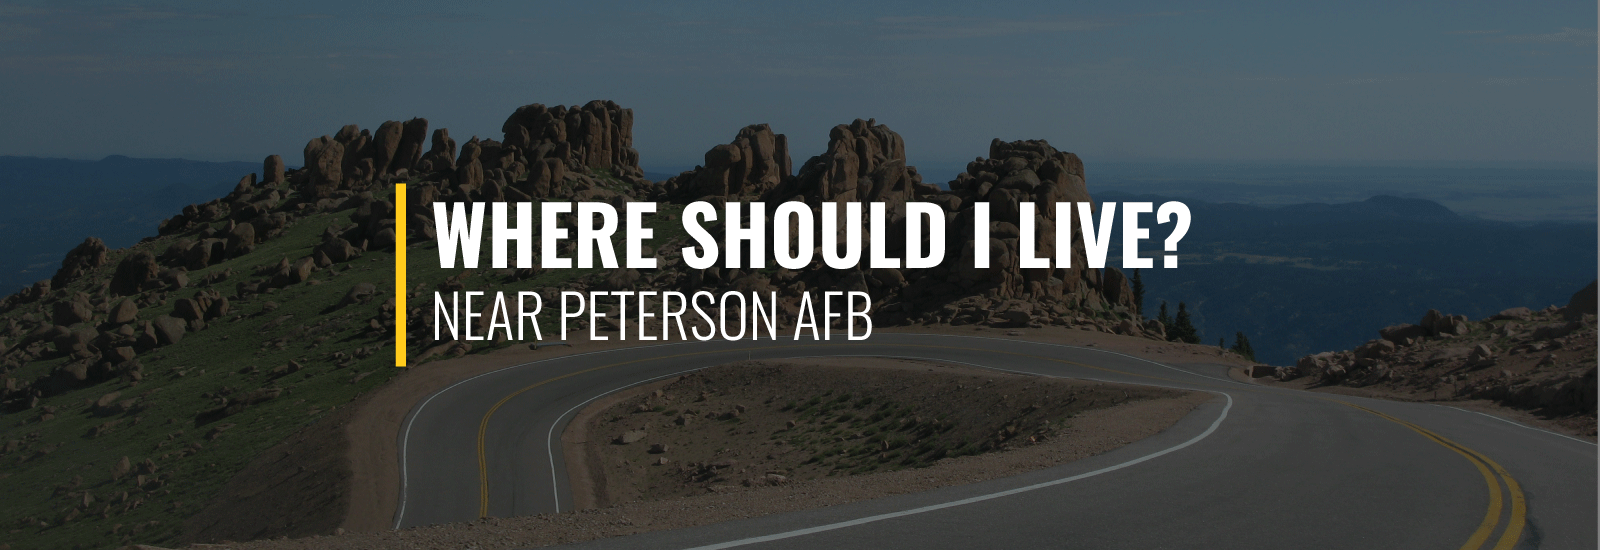 Where Should I Live Near Peterson AFB?